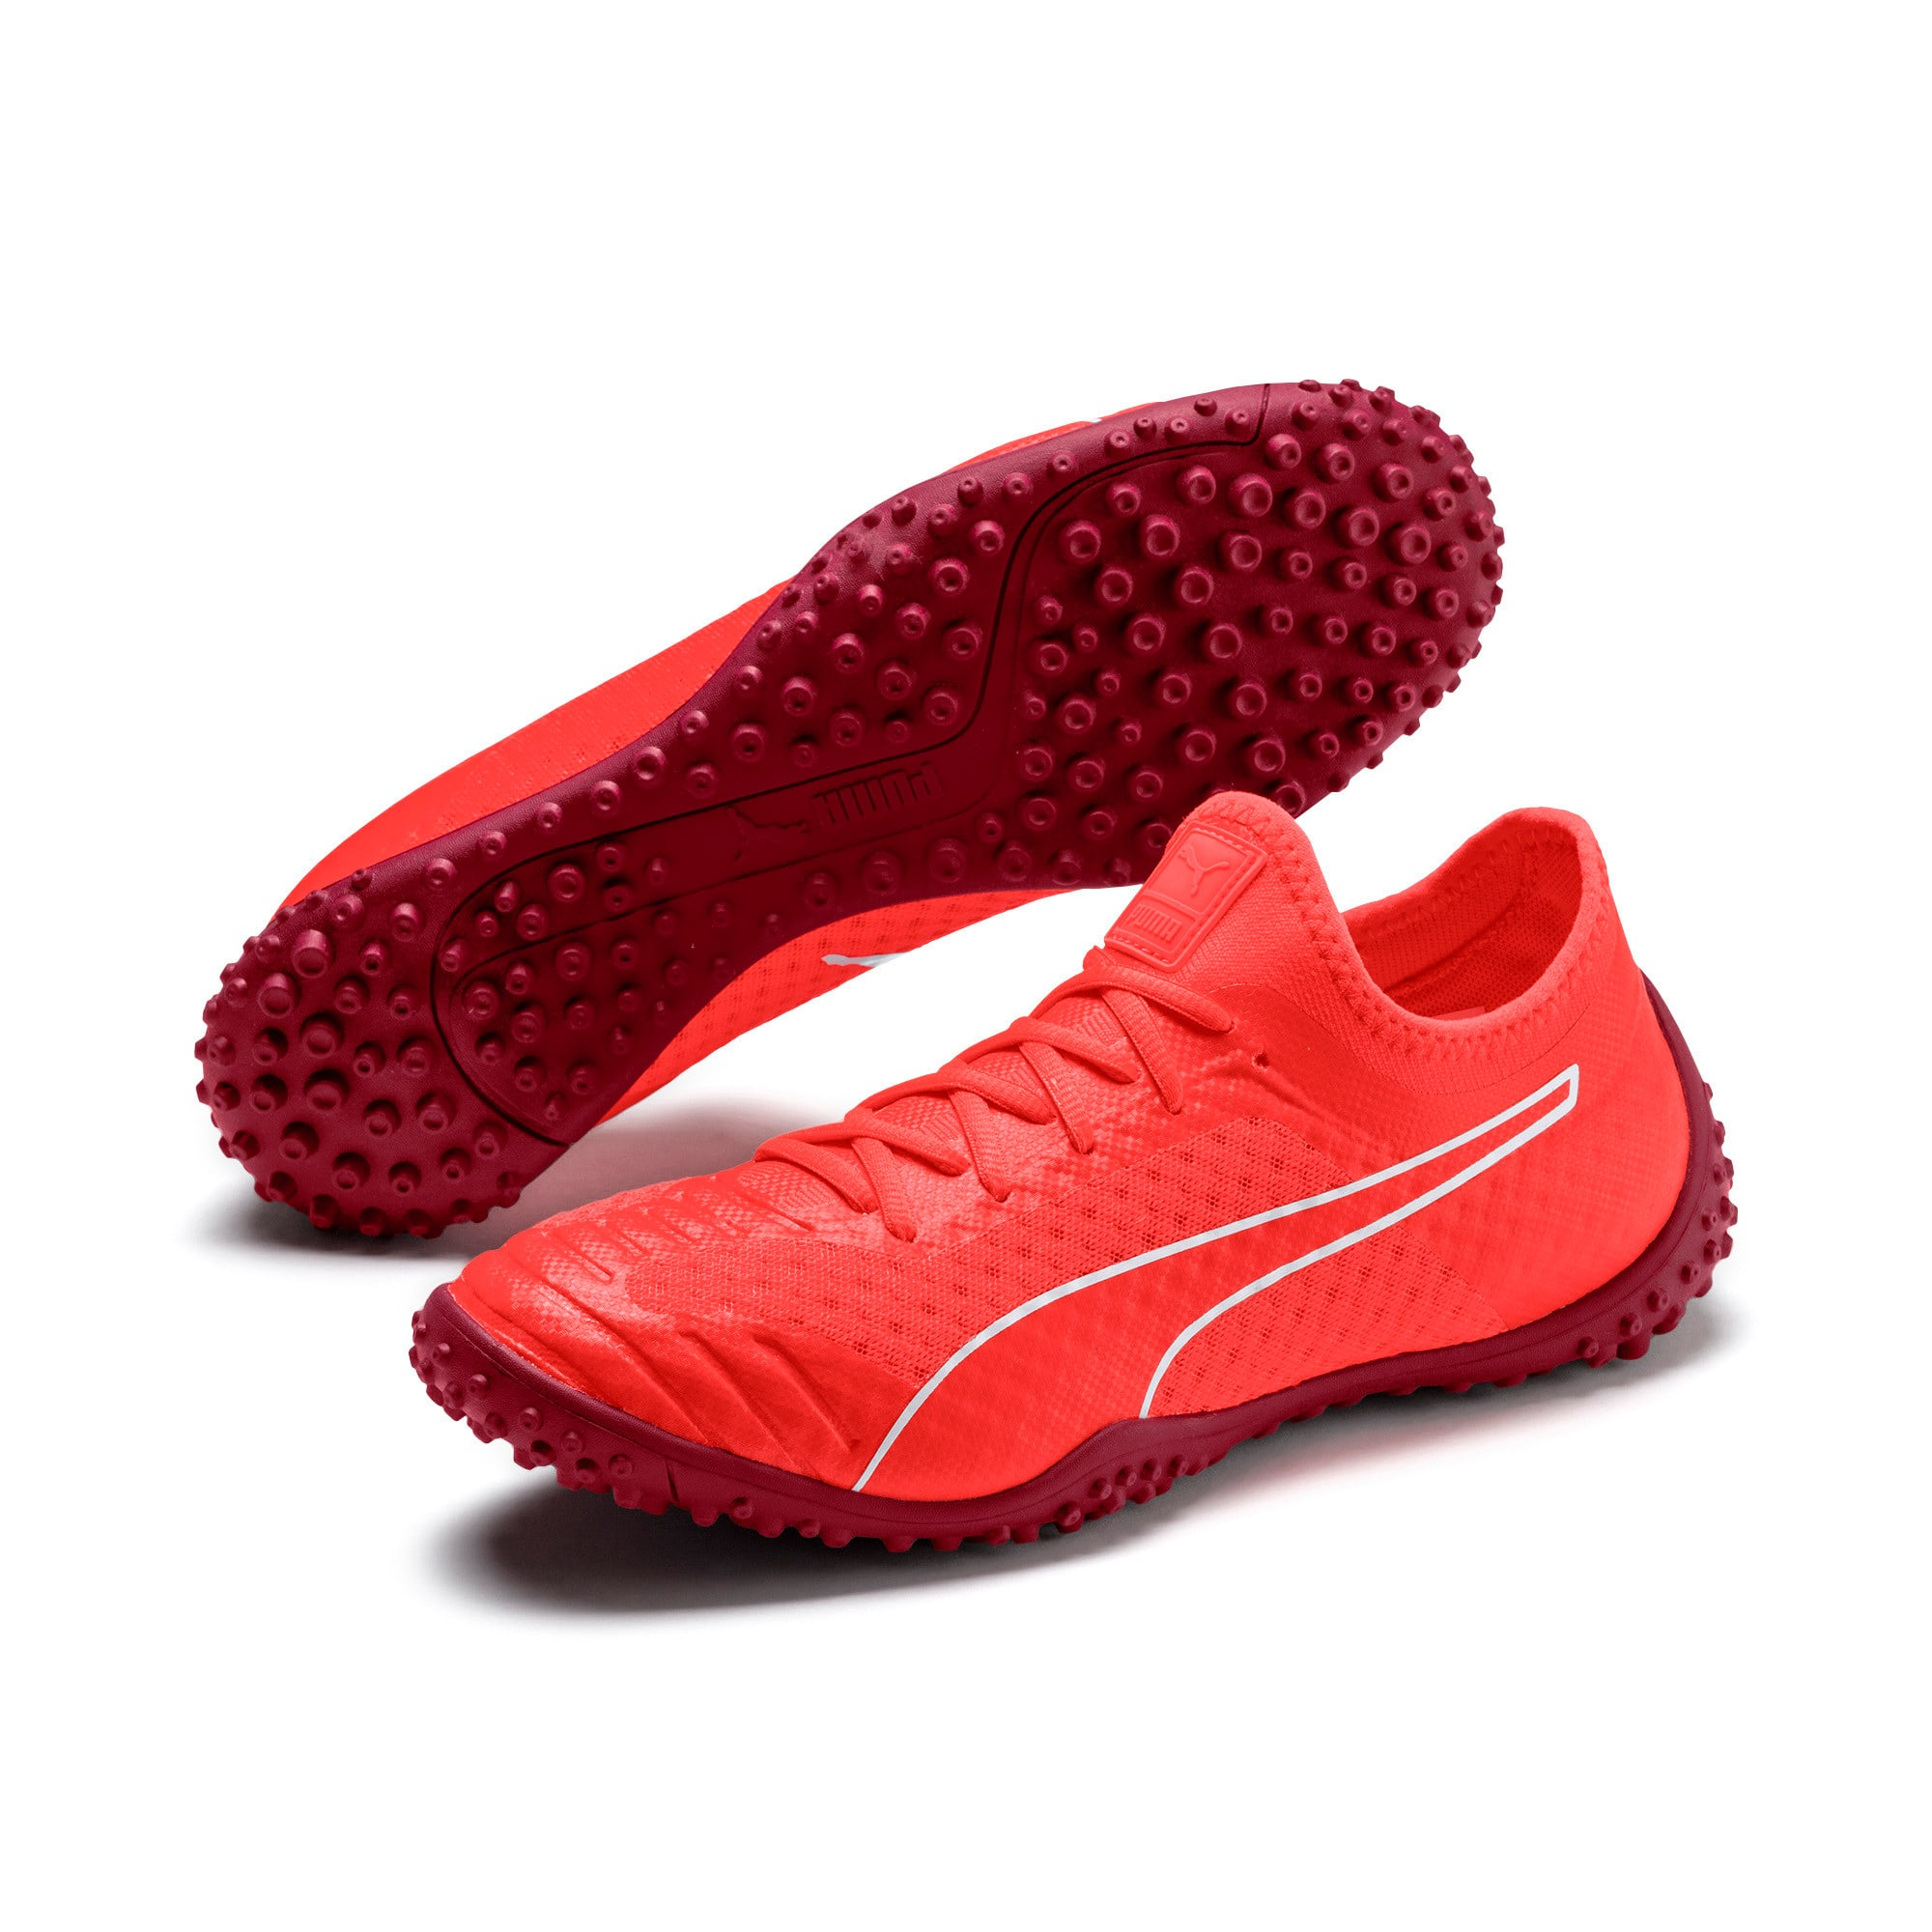 Thumbnail 2 of 365 Concrete 2 ST Men's Soccer Shoes, Nrgy Red-Rhubarb, medium